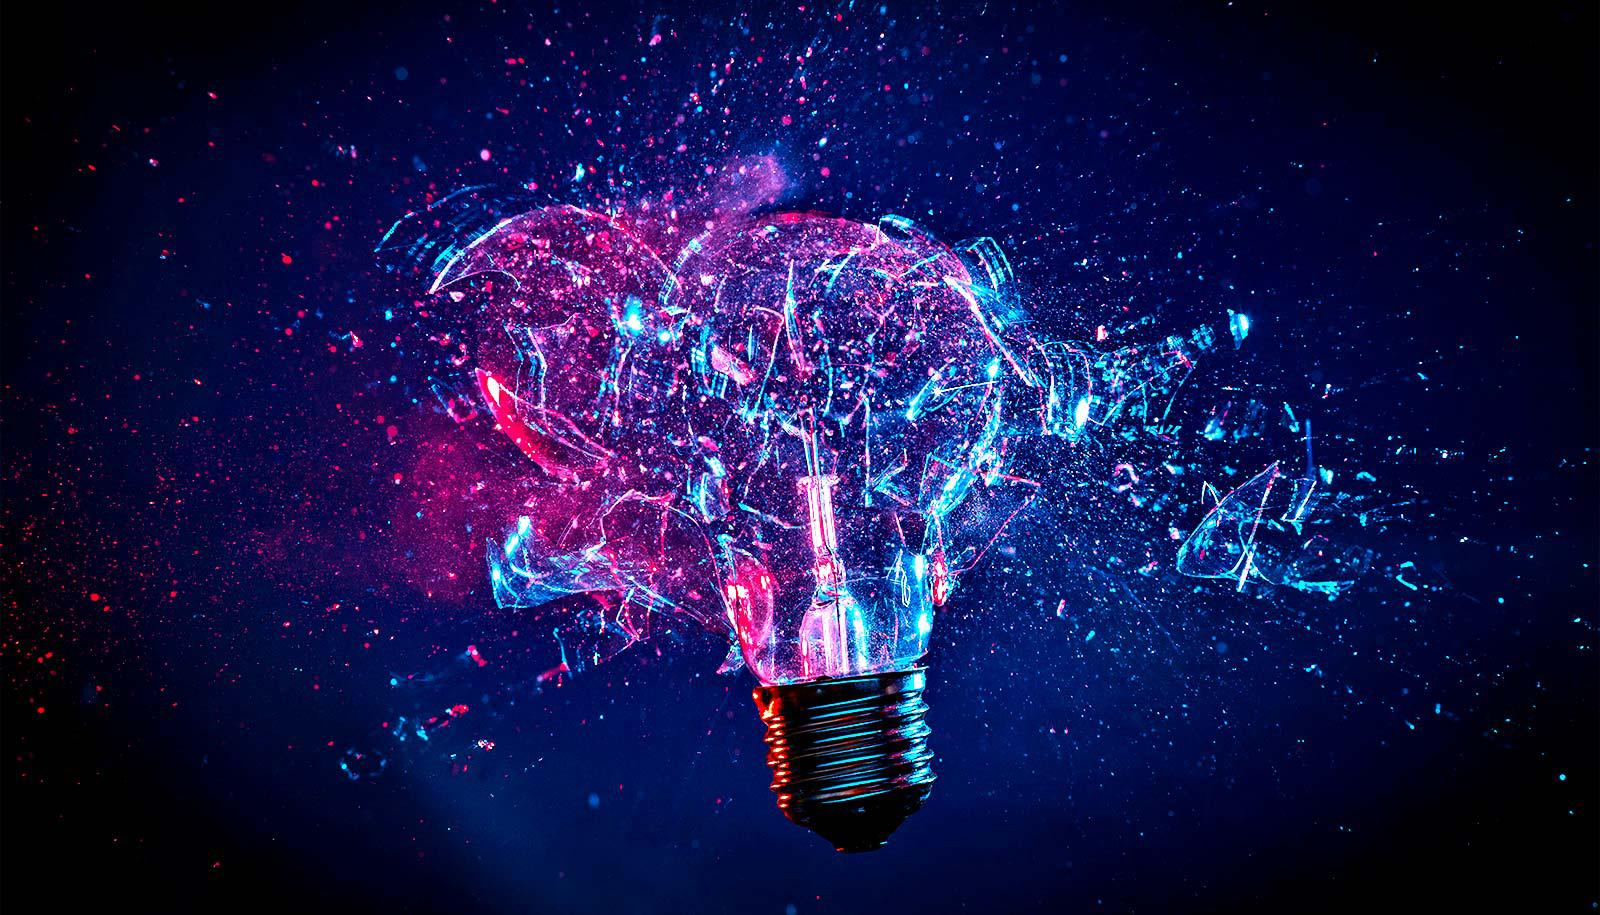 A lightbulb explodes with pink and blue light shining through it